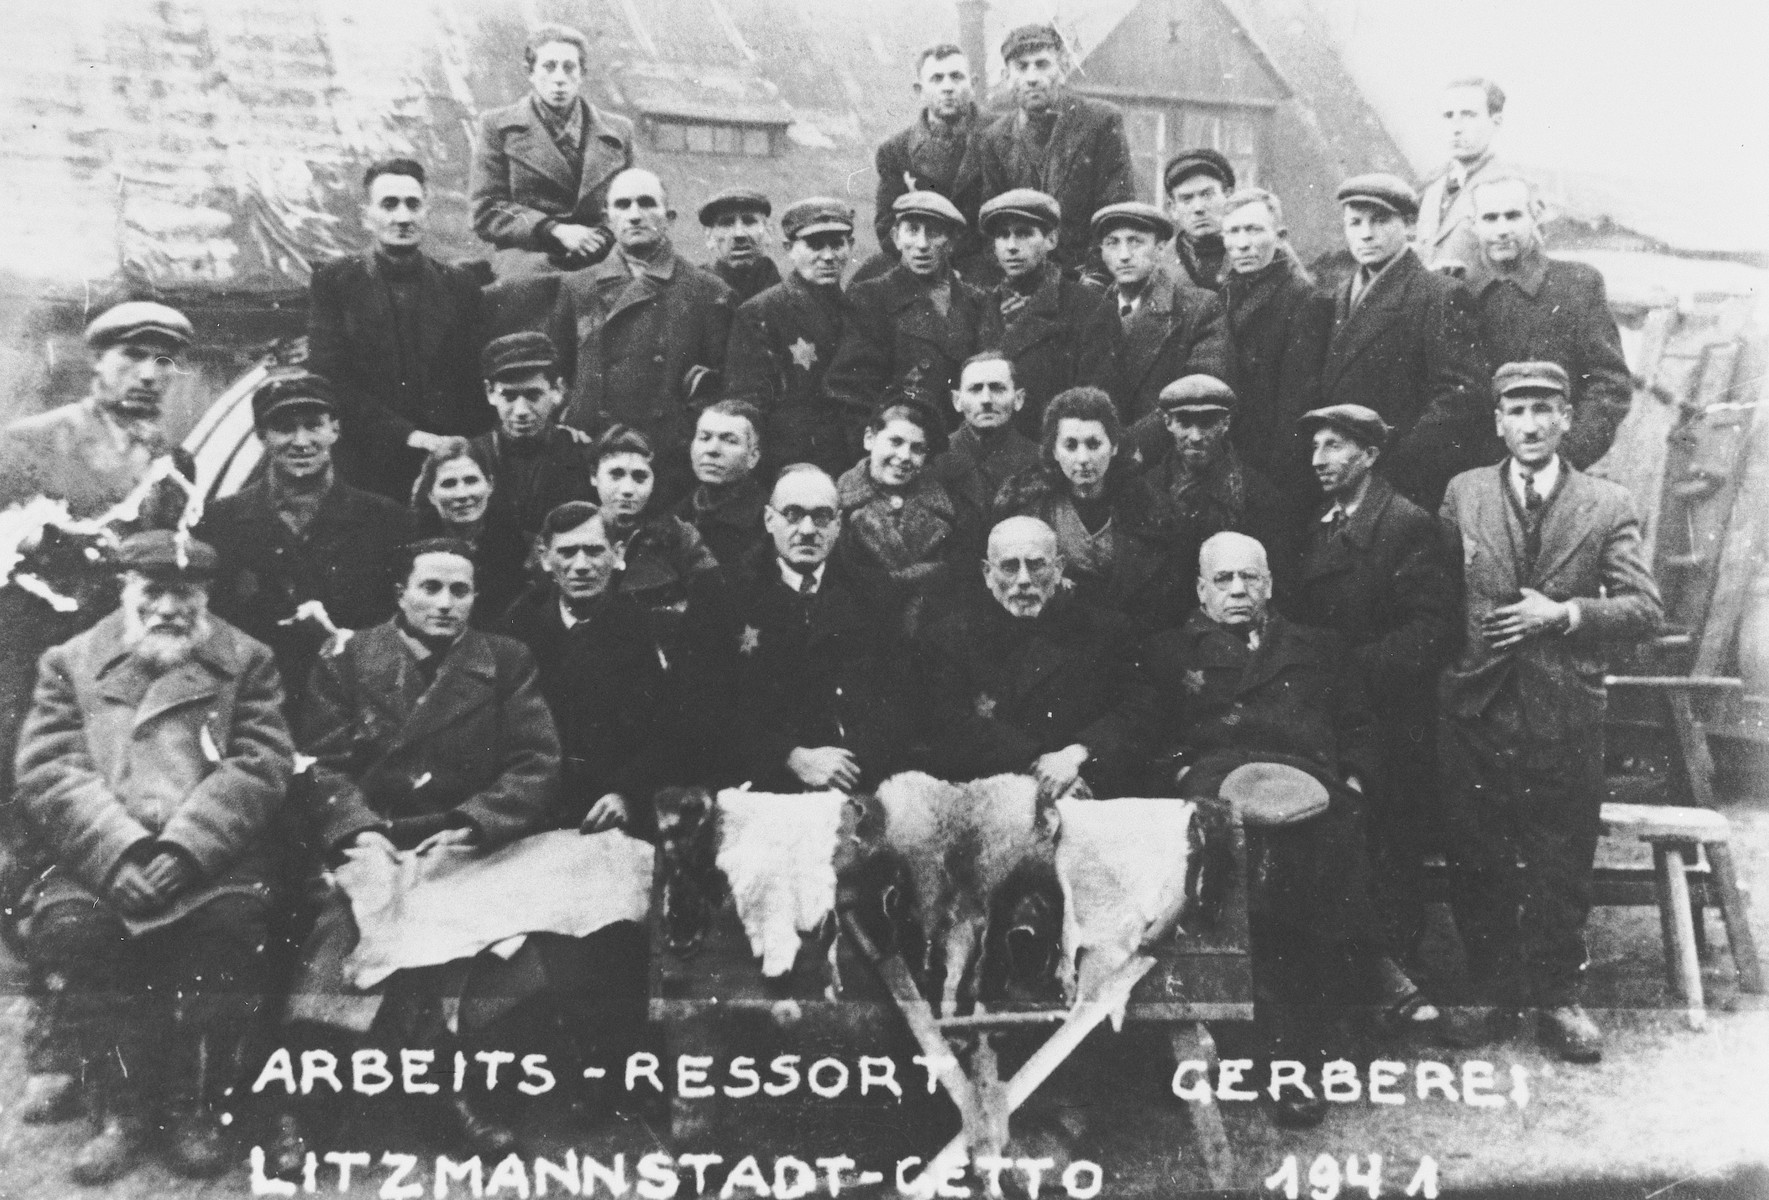 "Group portrait of the leather factory workers in the Lodz ghetto.  Shmuel Topilsky (grandfather of the donor) is pictured in the front row, second from the right.  Also pictured are Jacob Noech Galas (standing on far right in the second row from the front), Menachim Yehuda ""Moniek"" Galas (seated in the front row, second from left) and [perhaps the man seated to Menachim's right is Abram Michal Galas.]"